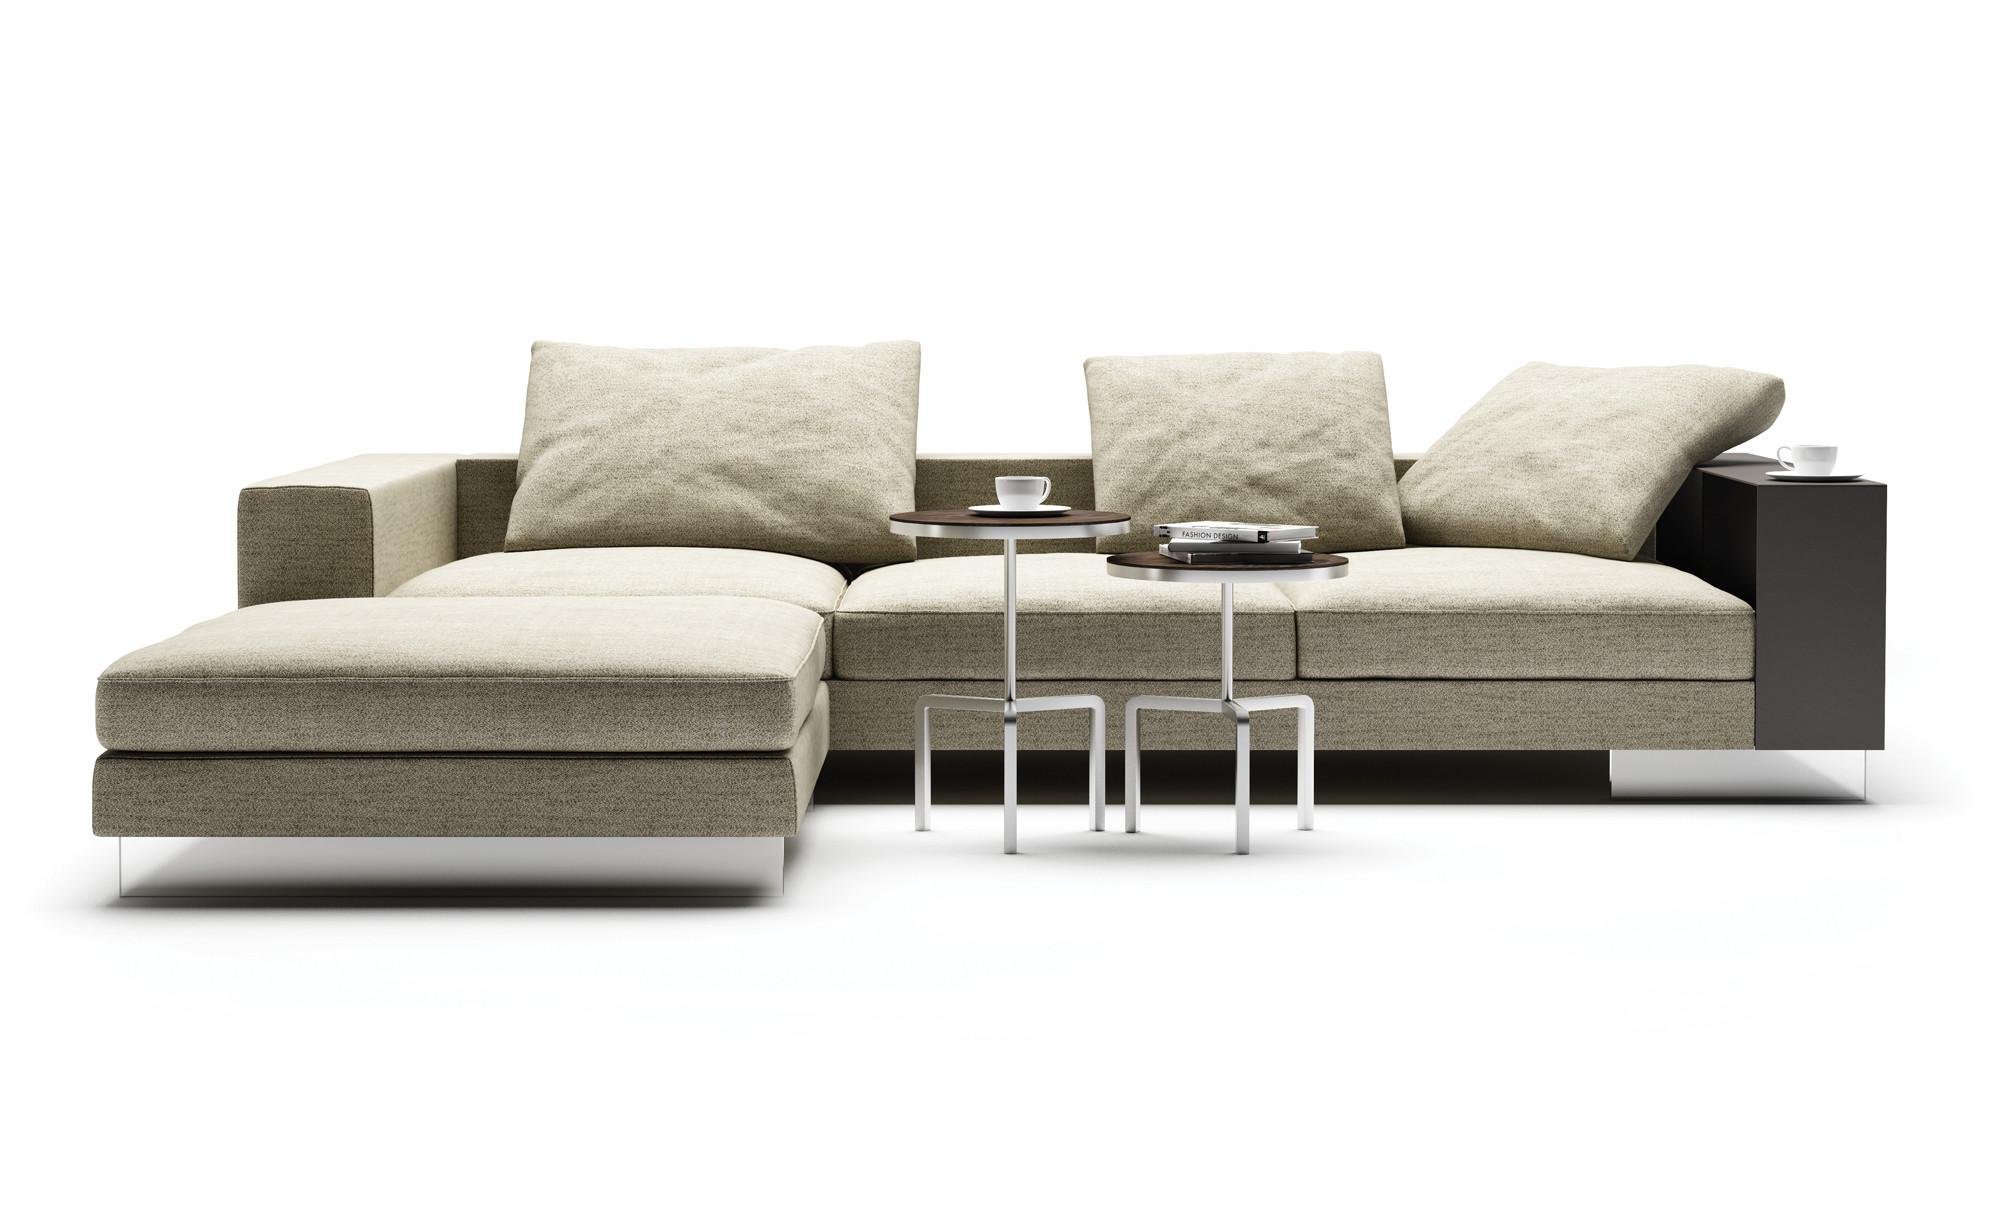 Lightpiece Modular Sofa Fanuli Furniture